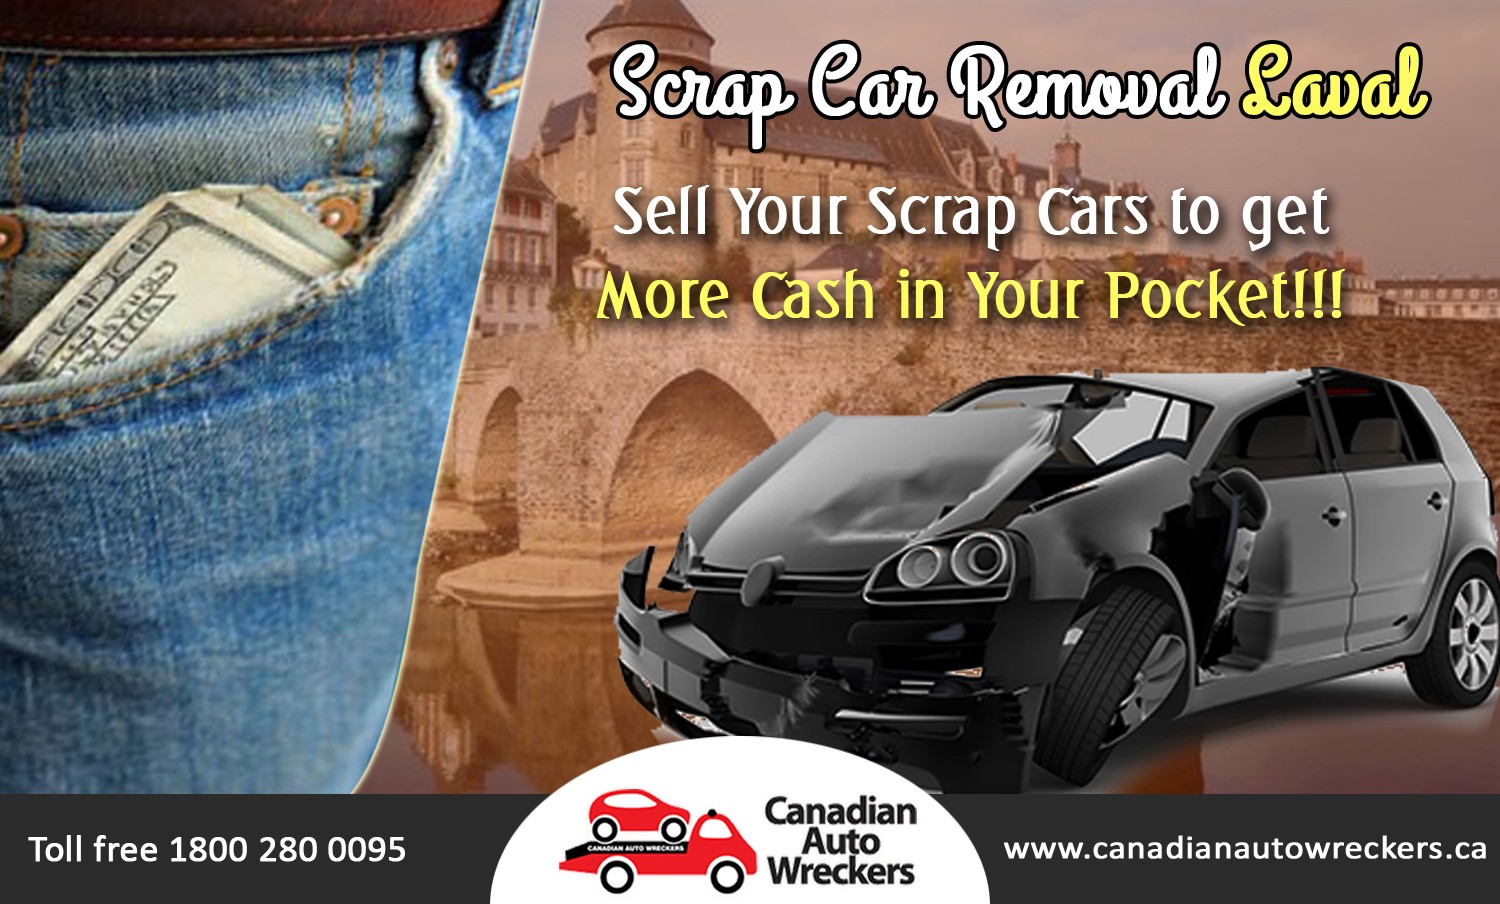 SCRAP YOUR OLD VEHICLE FOR CASH @ Scrap Car Removal Laval